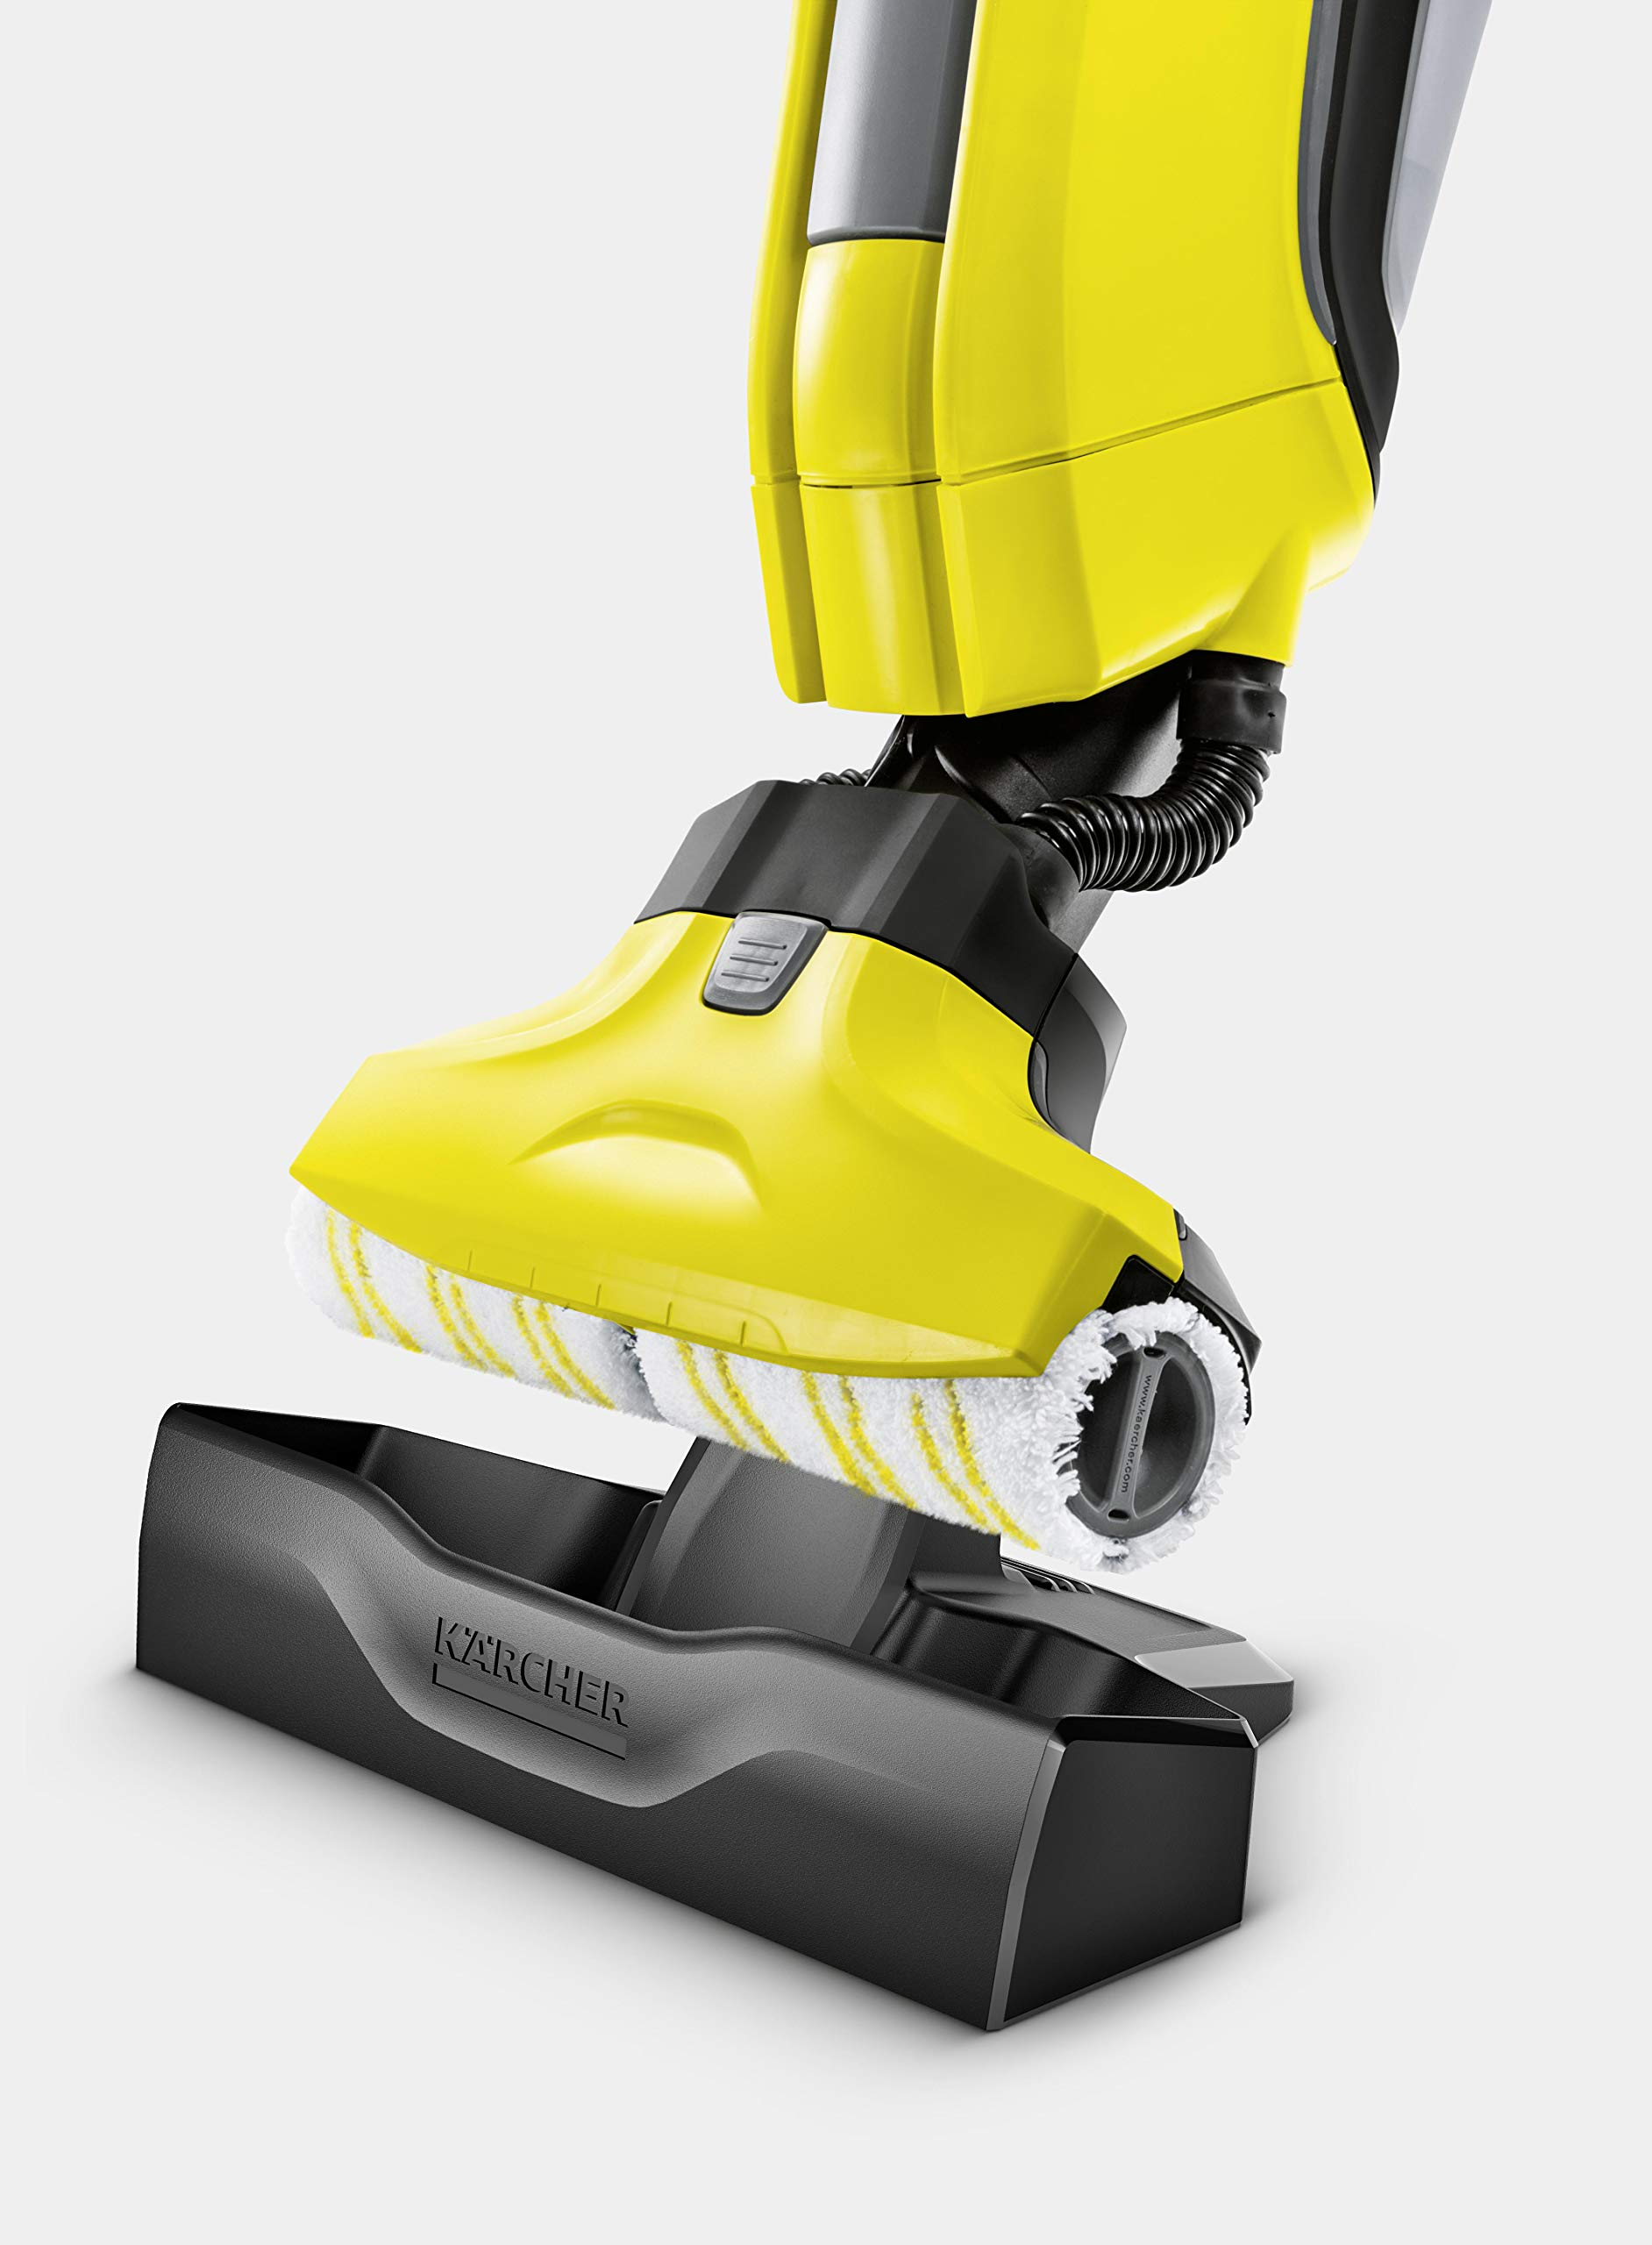 KARCHER FC5 Hard Floor Cleaner - Yellow by Karcher (Image #6)